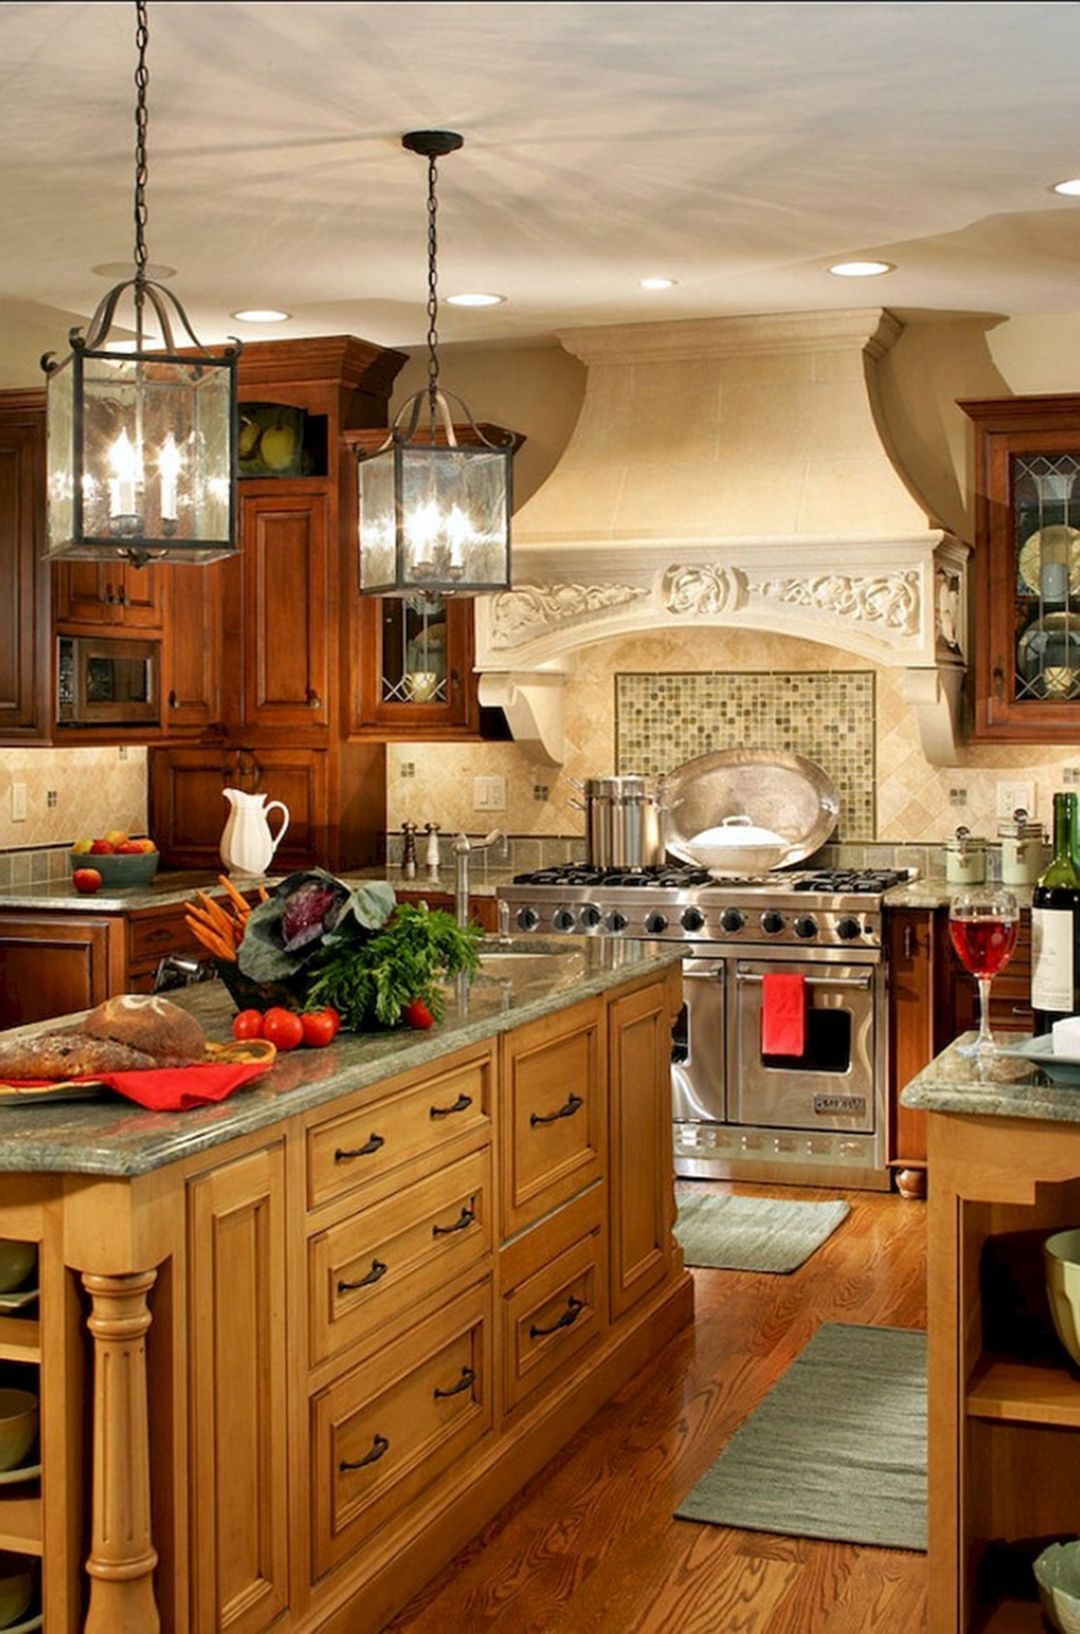 11 elegant modern rustic farmhouse kitchen cabinets ideas in 2020 french country kitchens on farmhouse kitchen hutch id=93903